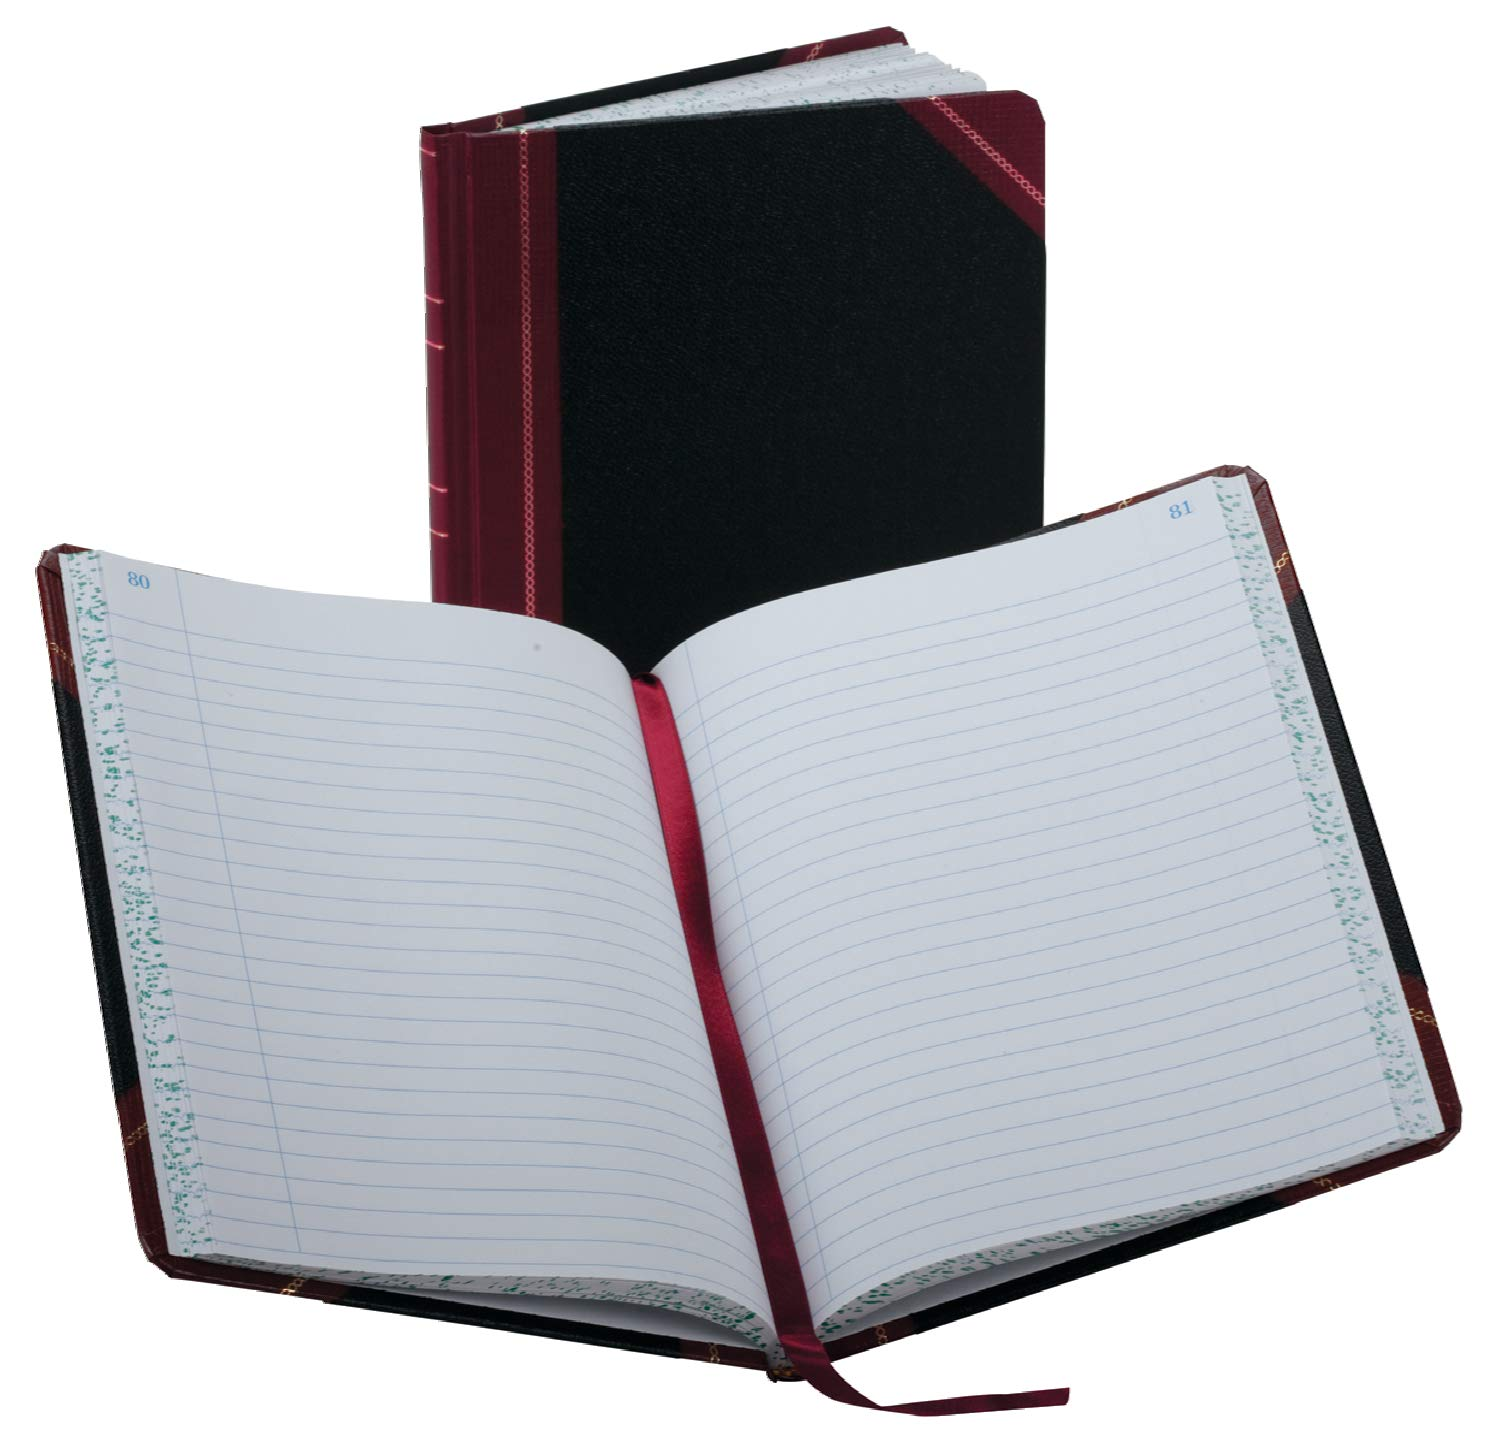 Boorum & Pease 38150R Record/Account Book, Record Rule, Black/Red, 150 Pages, 9 5/8 x 7 5/8